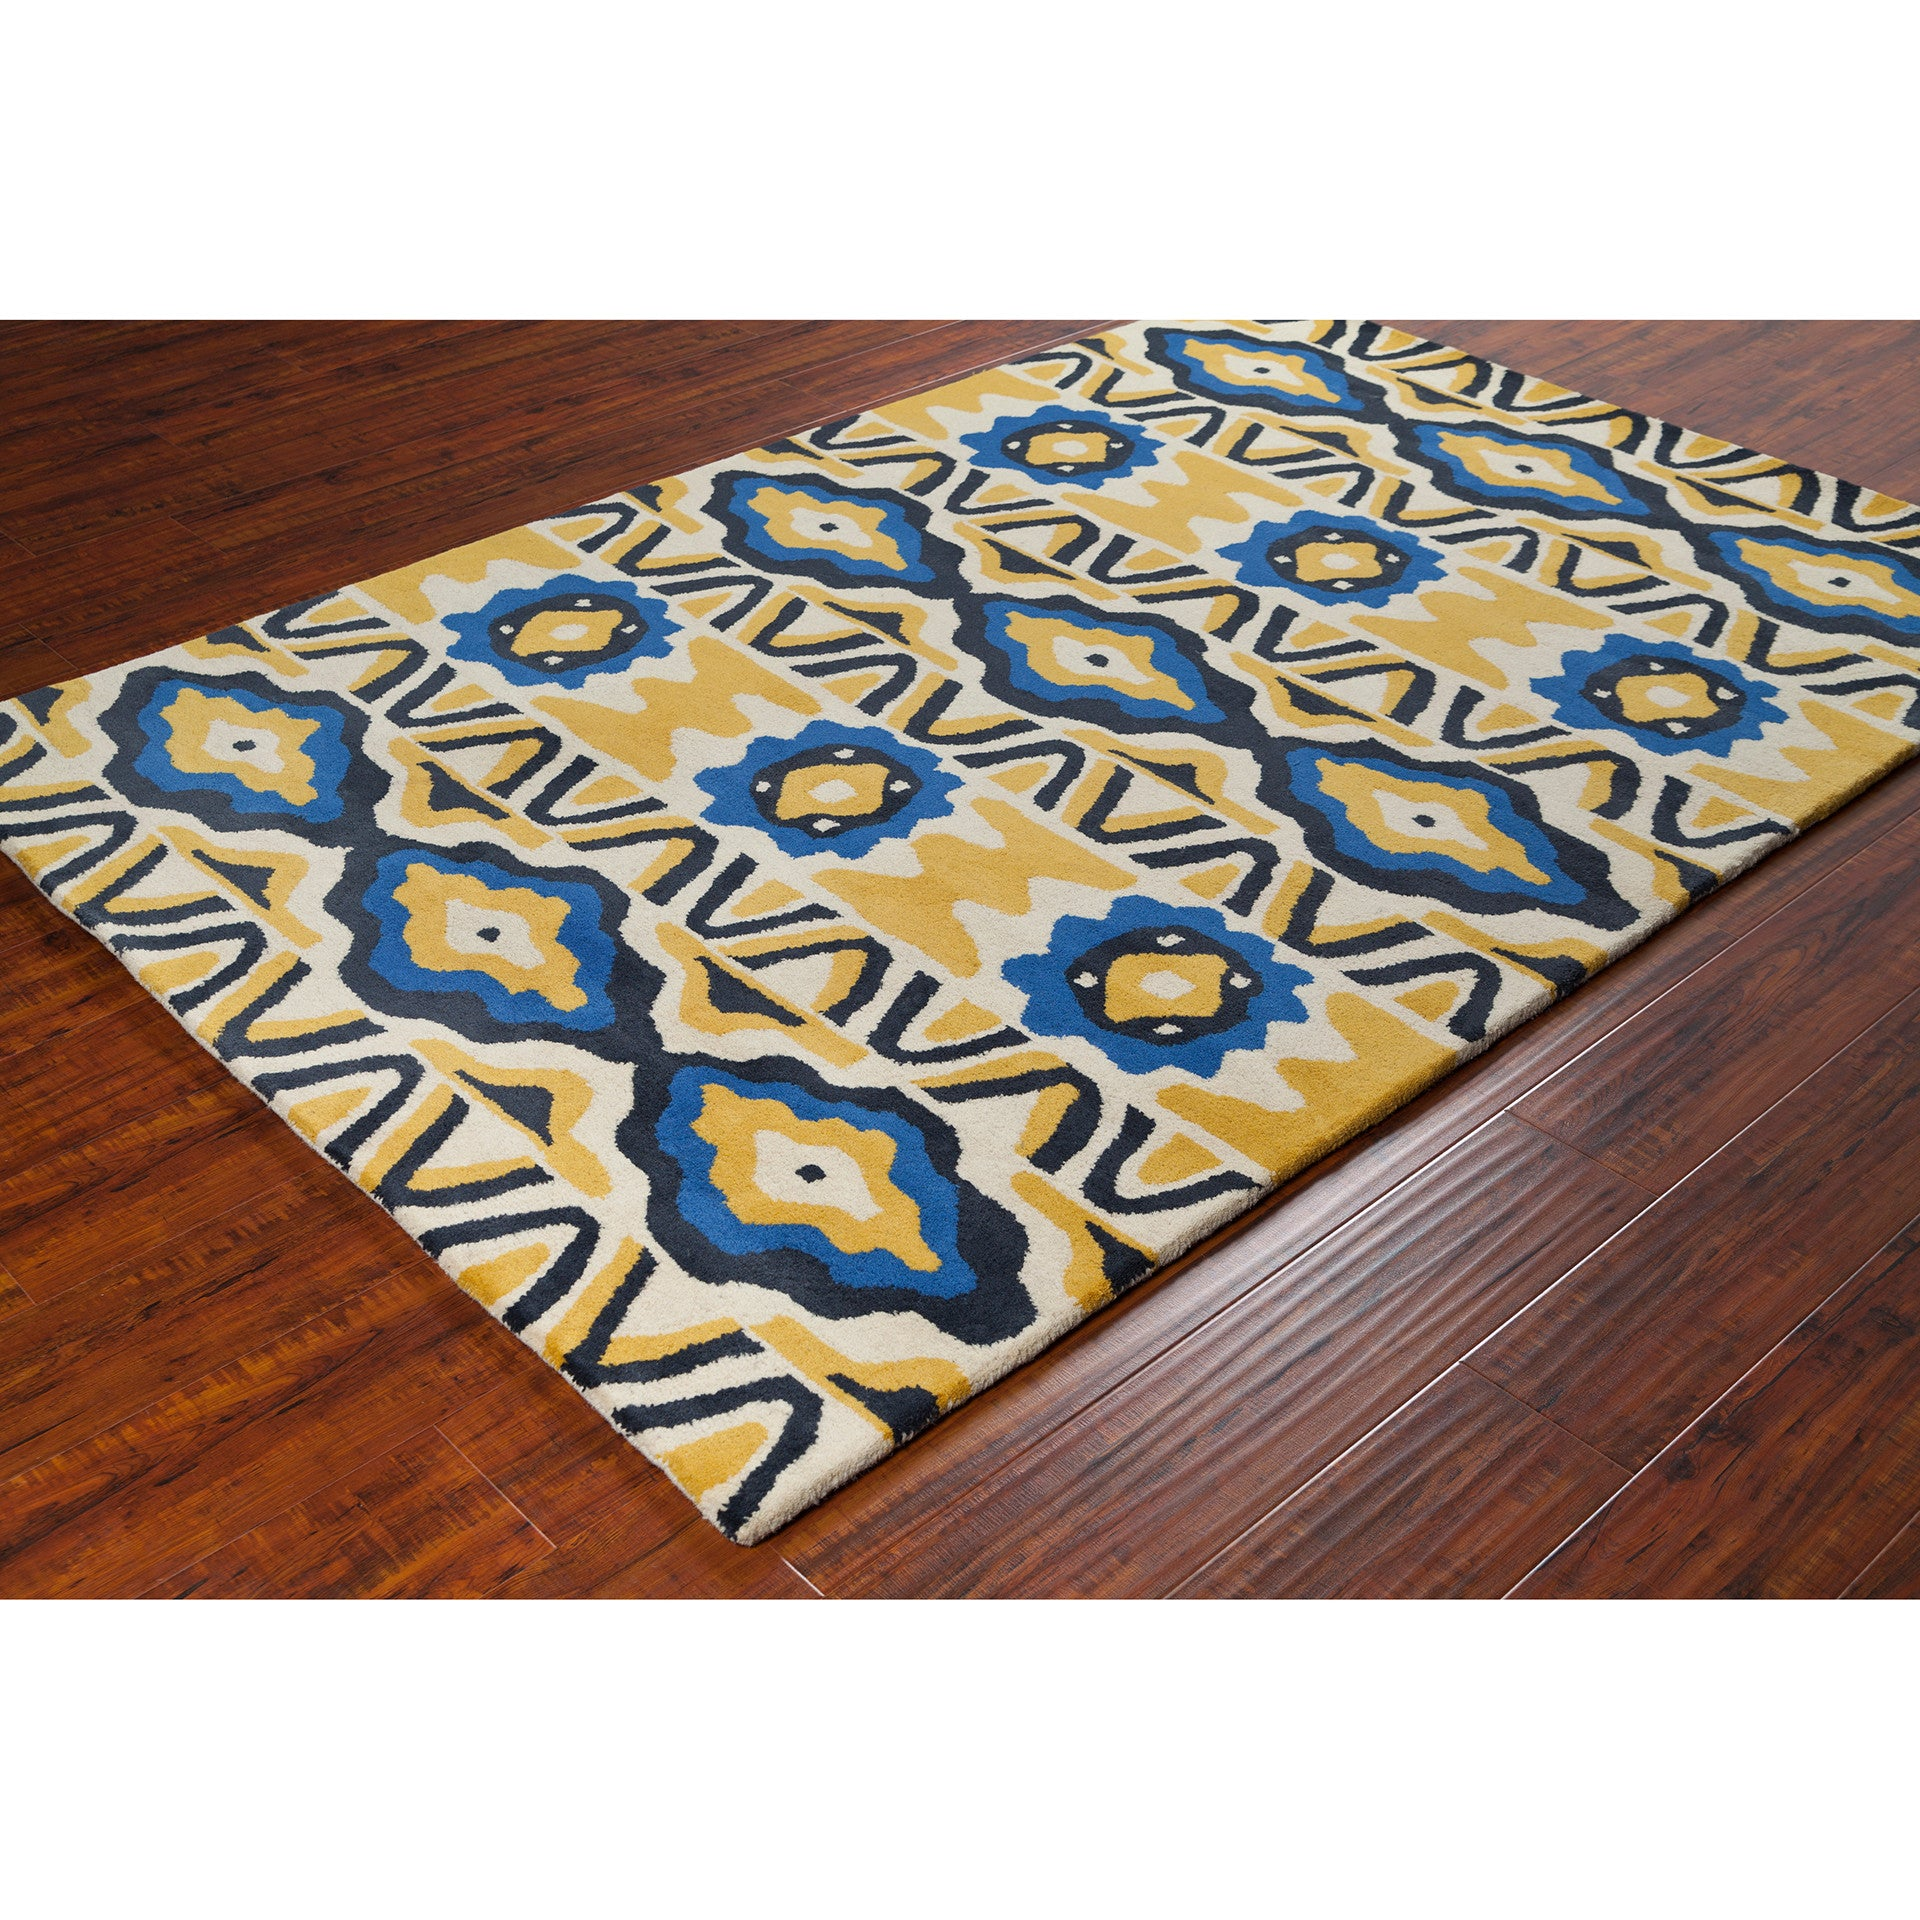 Stella Collection Hand Tufted Area Rug In Cream Yellow Blue Burke Decor